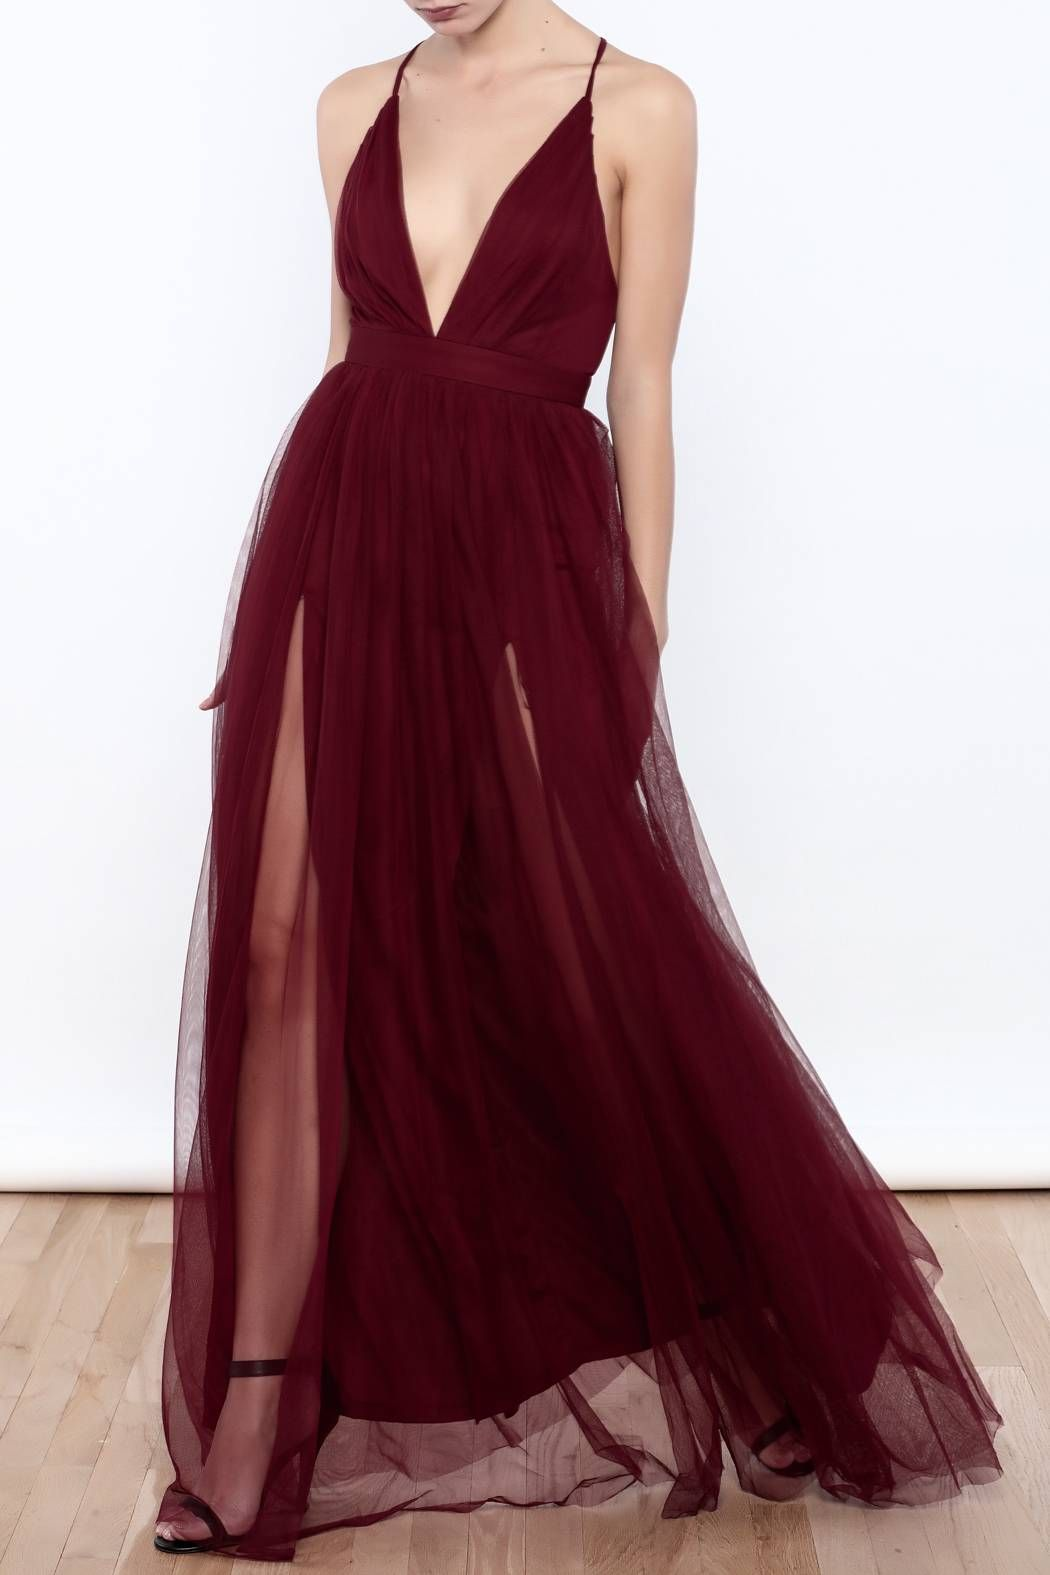 2bc41b11ec luxxel Tulle Maxi Dress - Front Full Image. Deep V-Neck Long Prom Formal  Evening Party Dresses ...